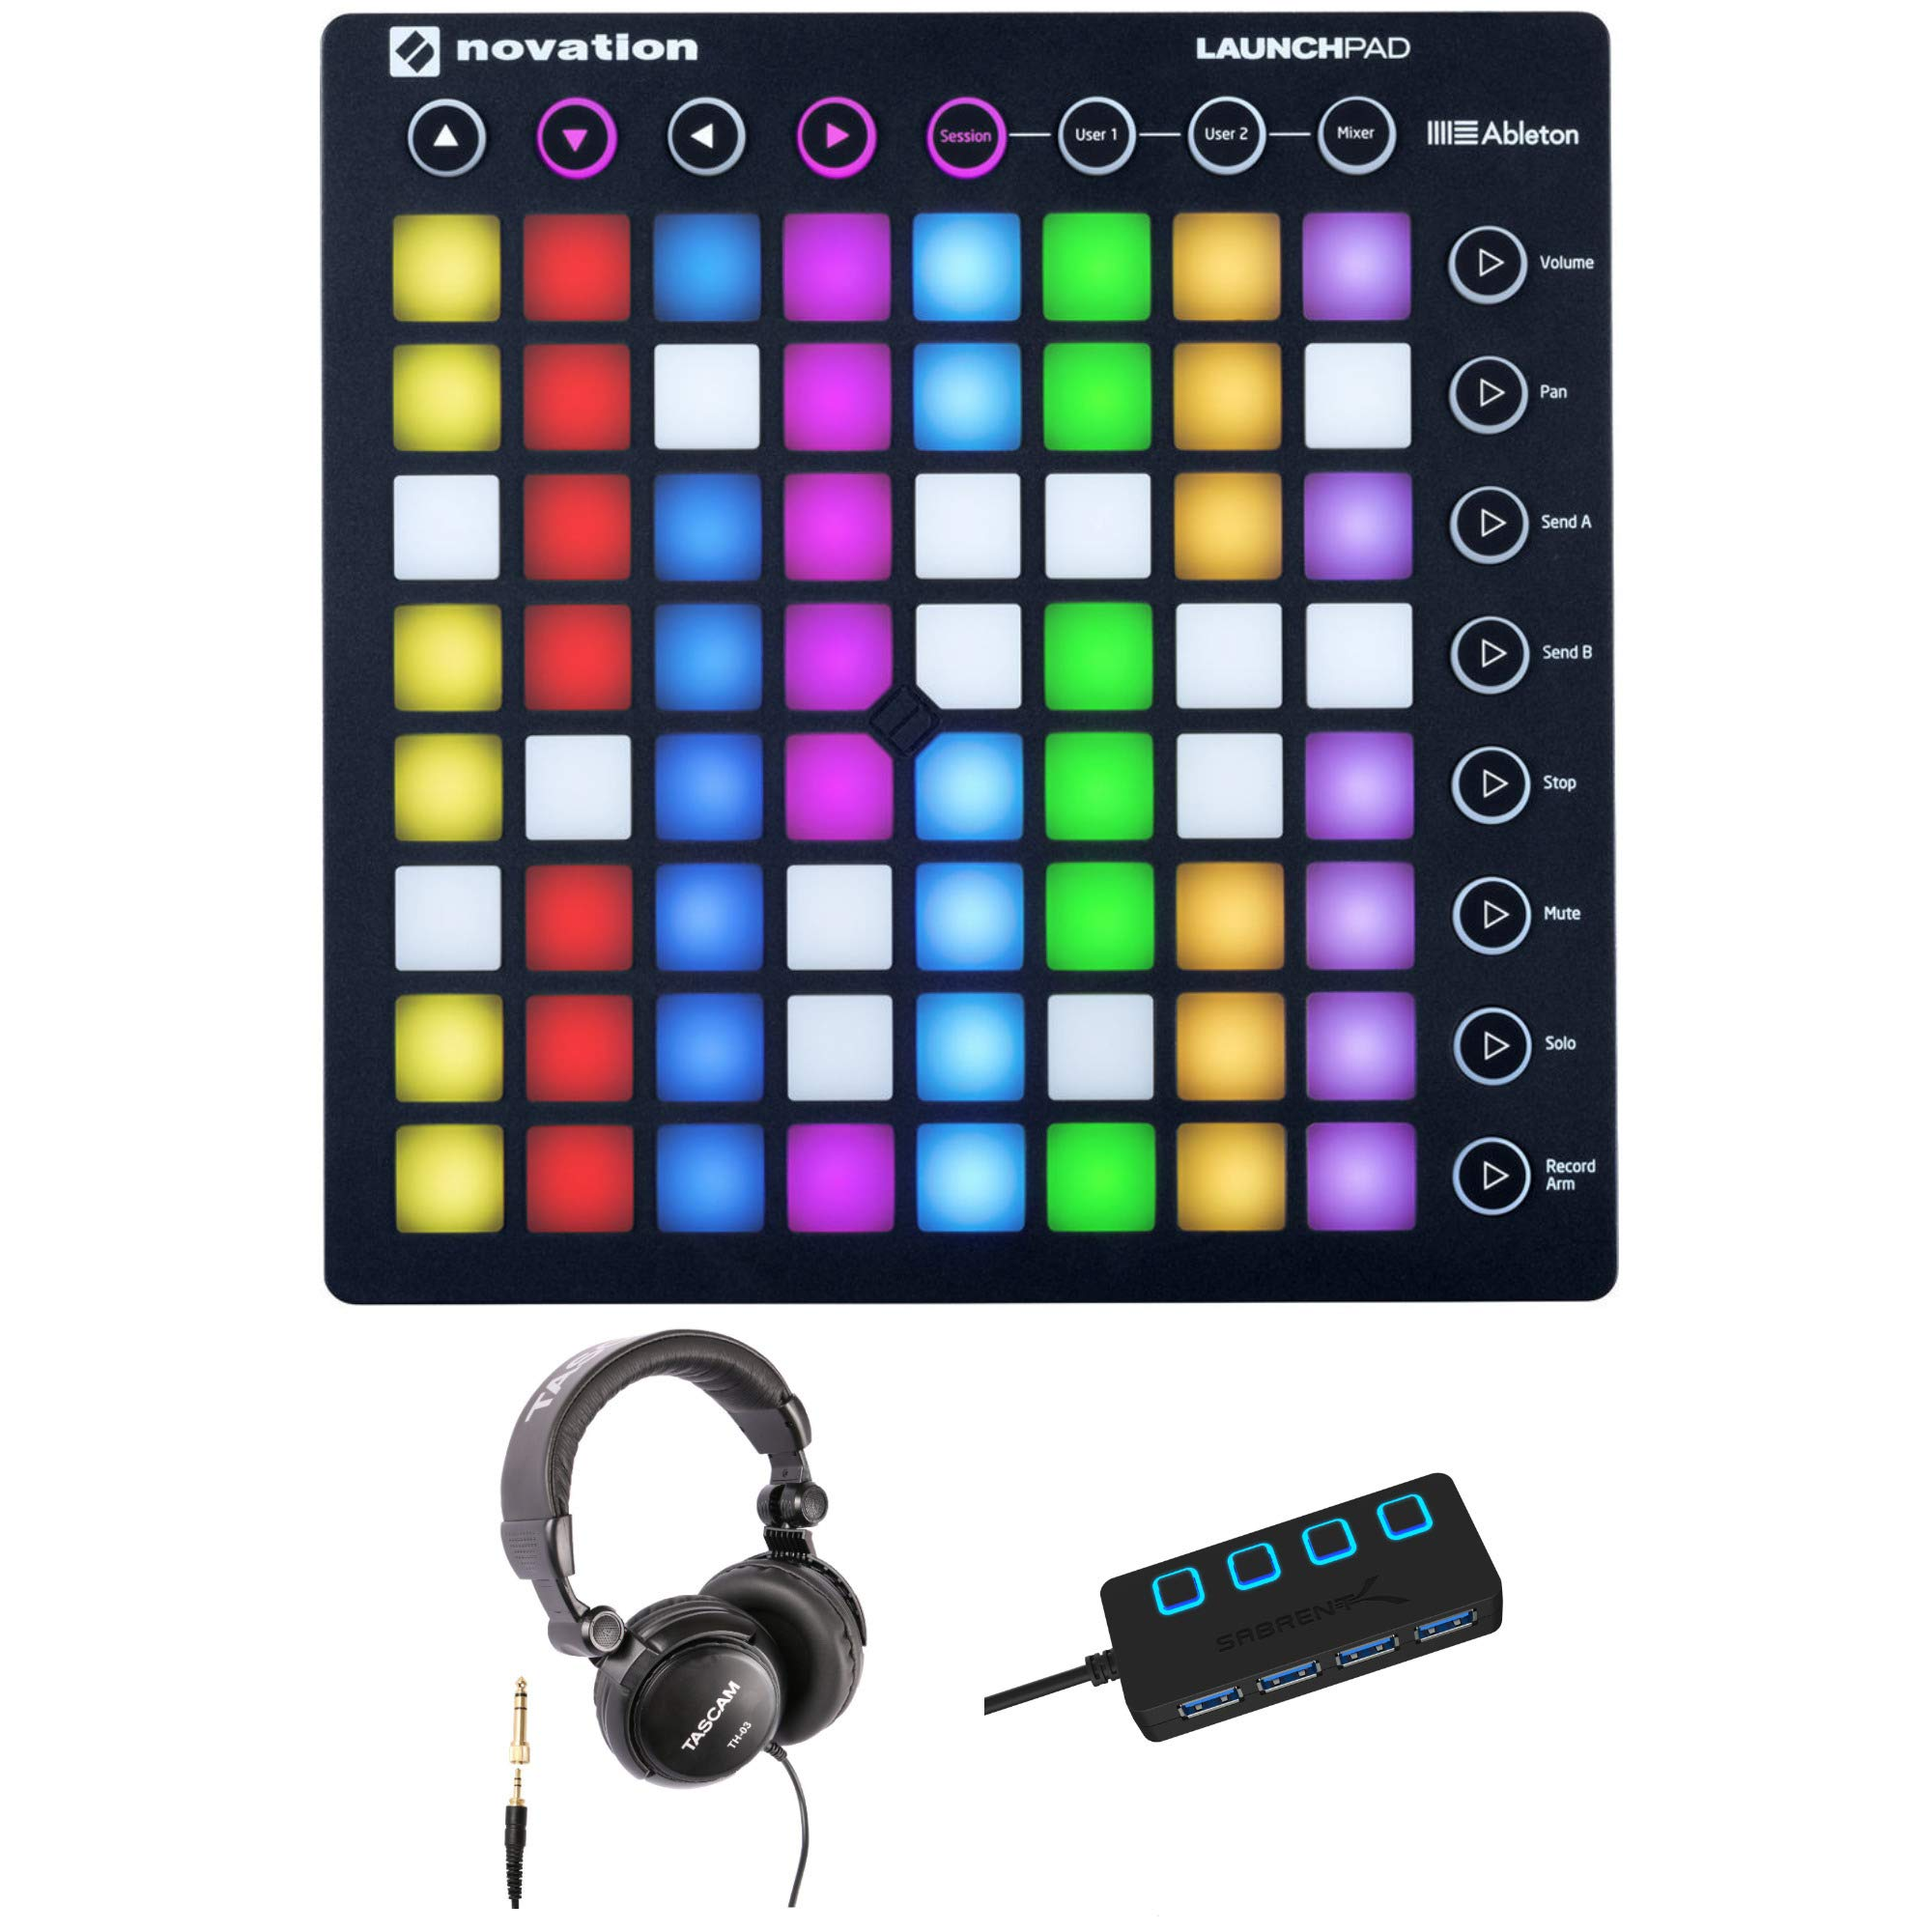 Novation Launchpad MK2 Ableton Live Grid Controller with Headphones and 4 Port 3.0 USB HUB by Novation